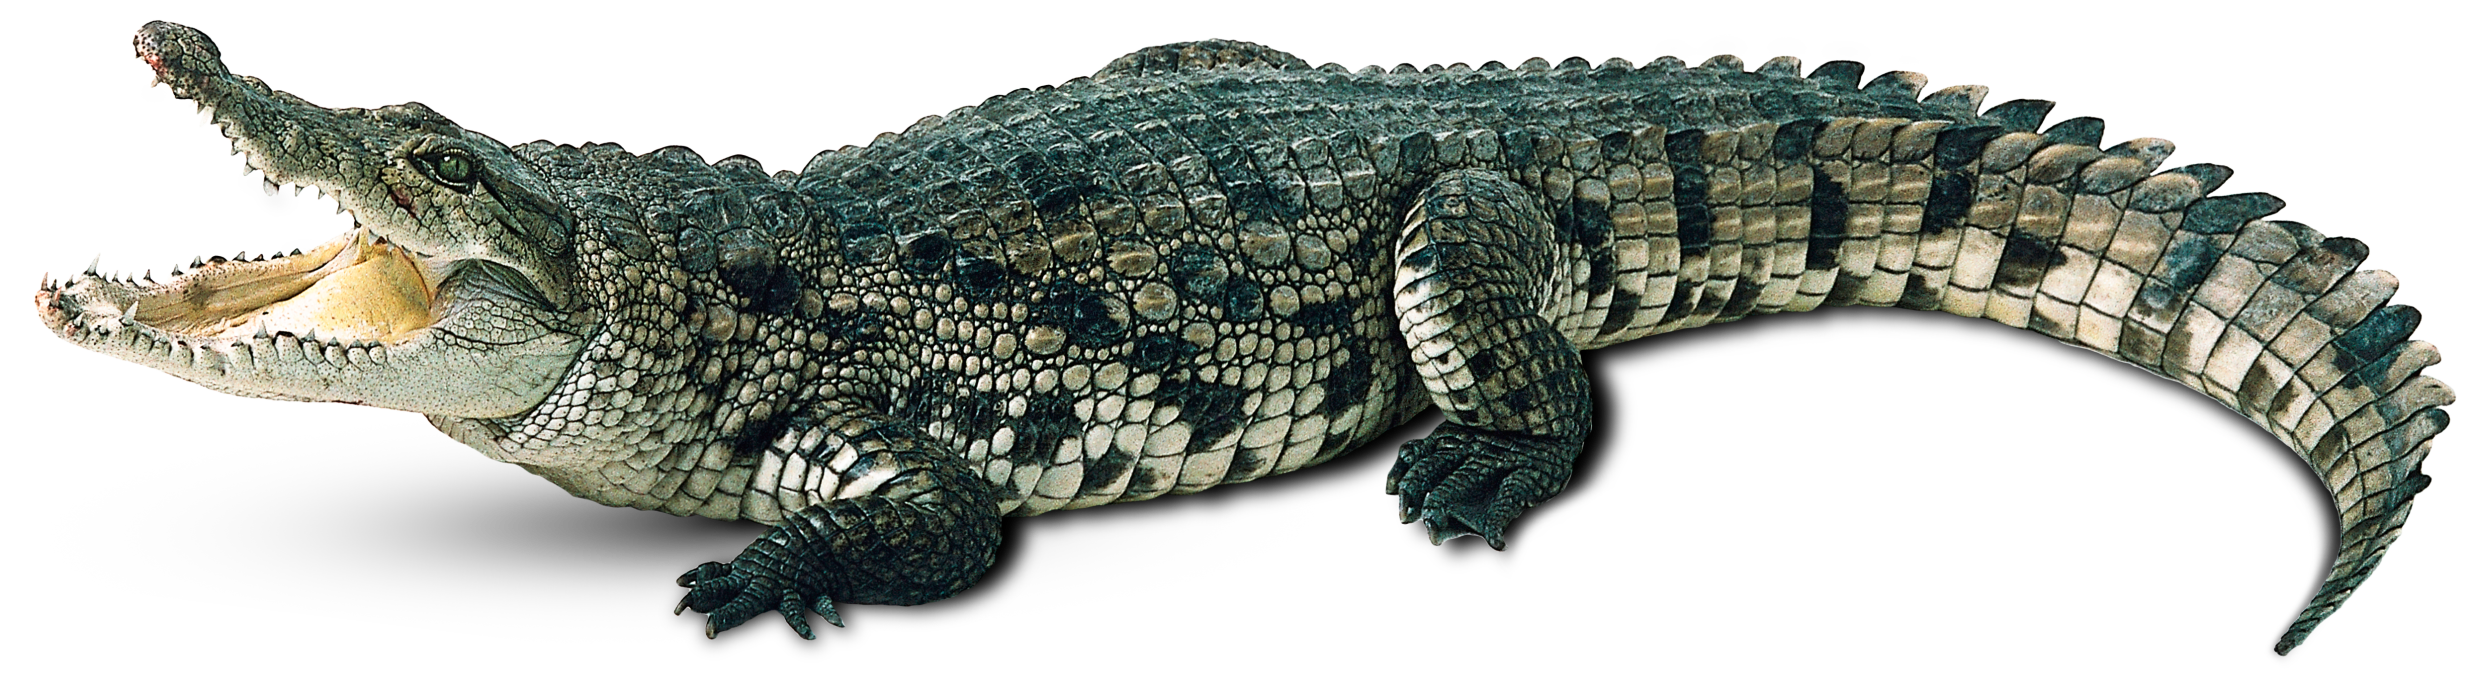 Crocodile PNG Transparent Images.